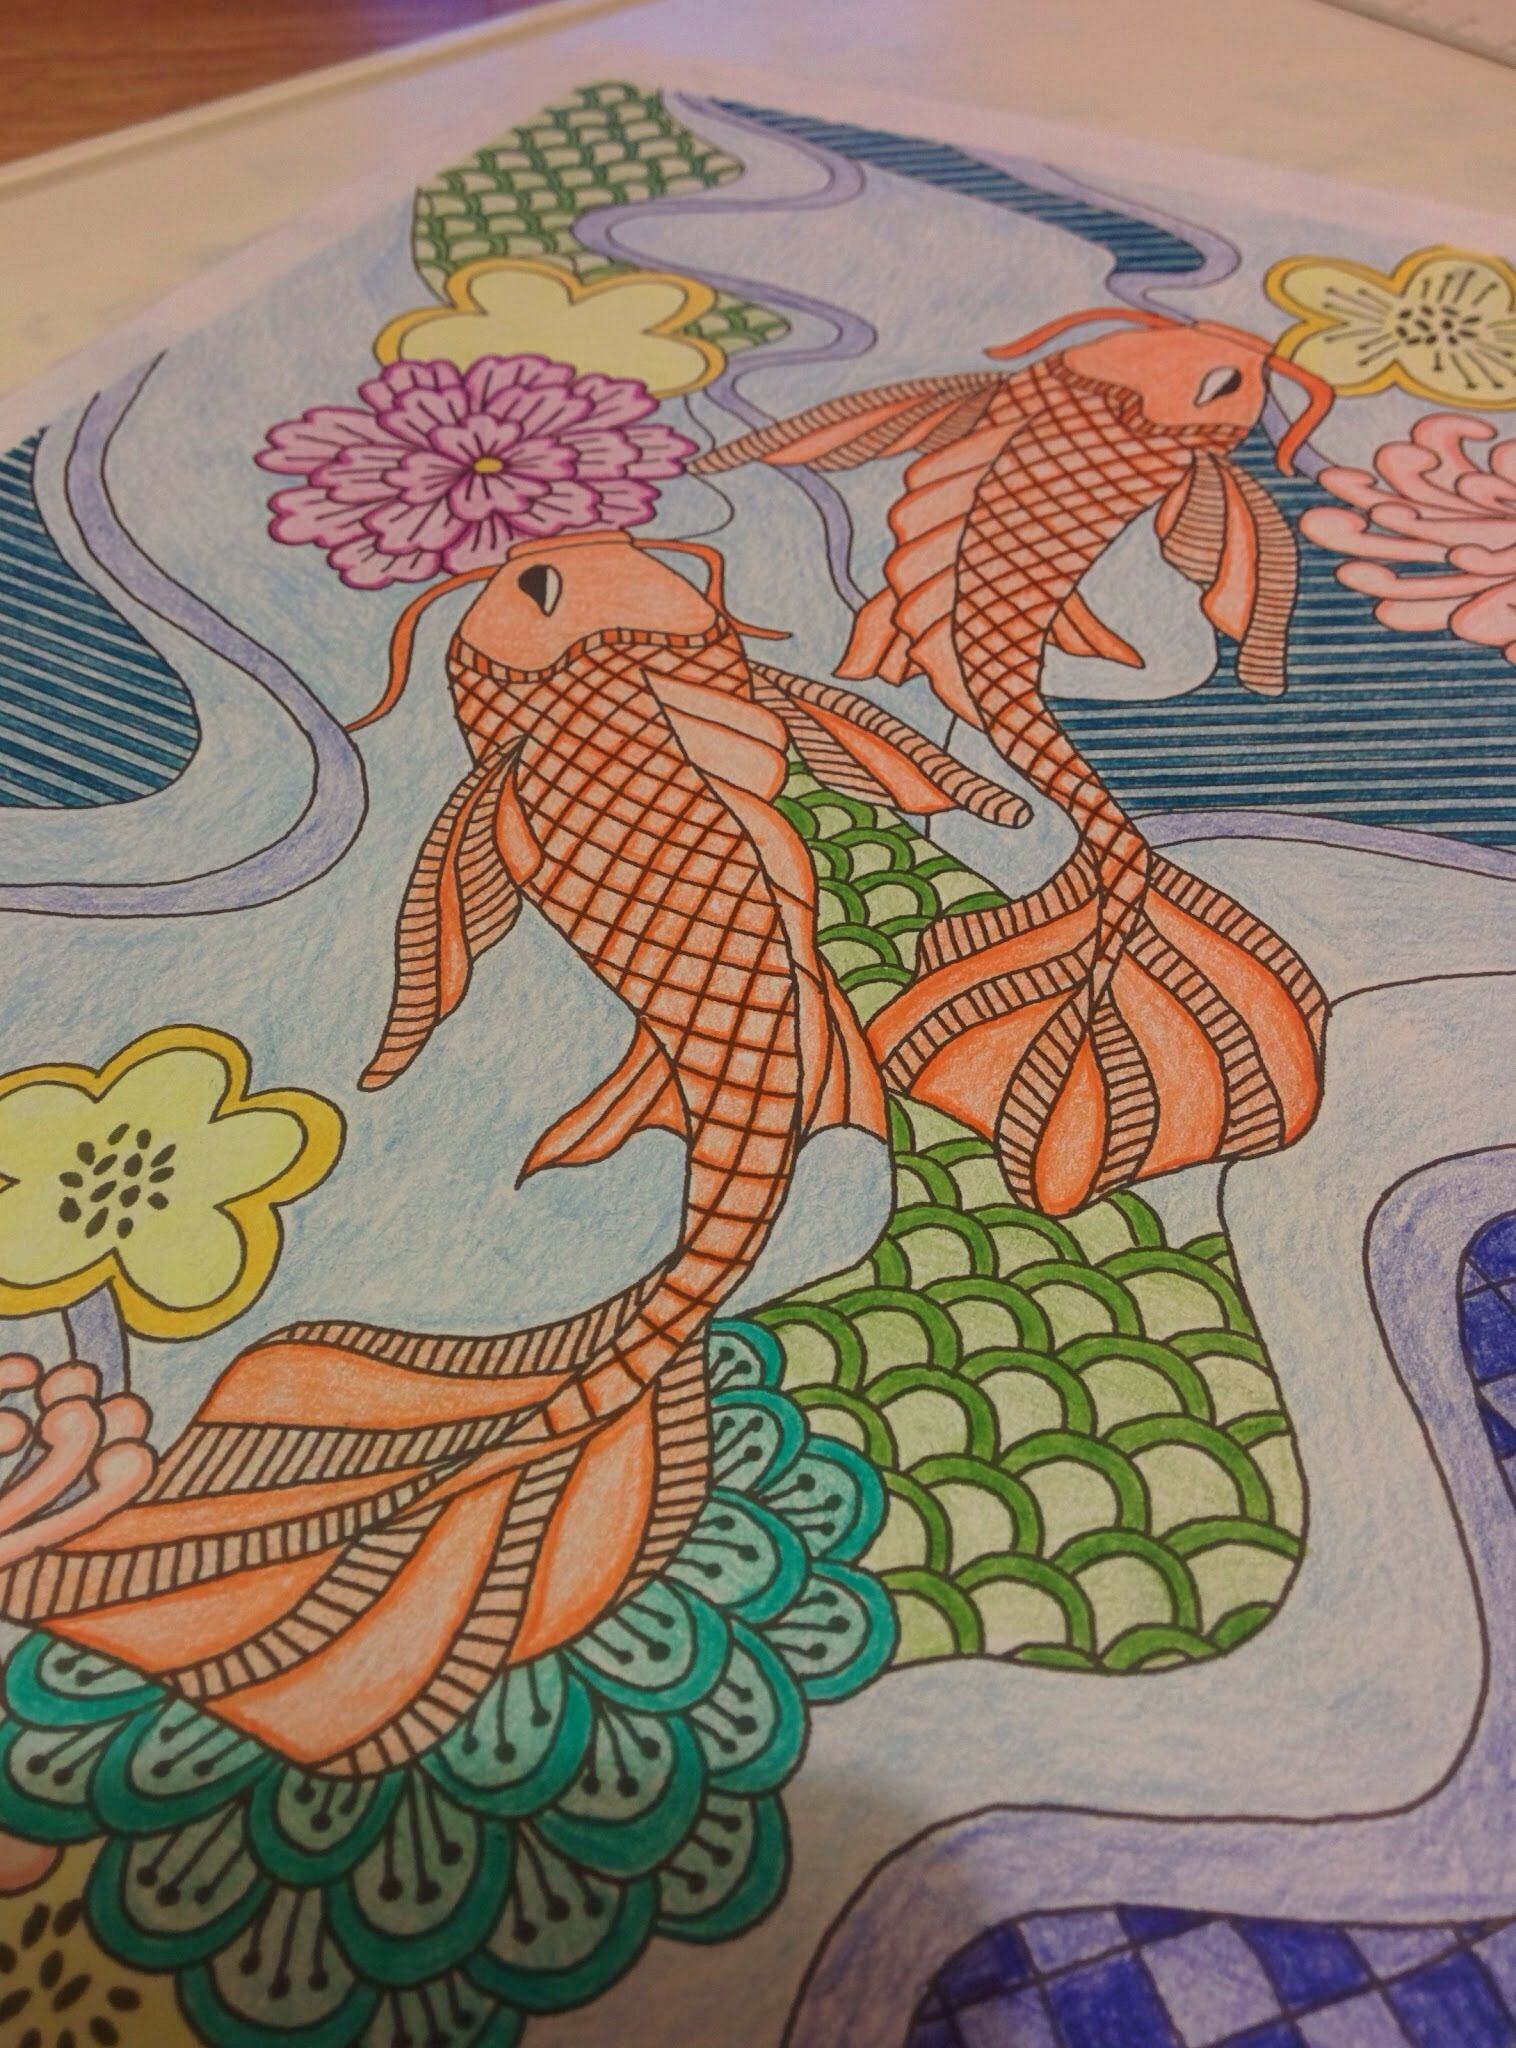 Creative Colouring Patterns : Creative colouring for grown ups japanese patterns